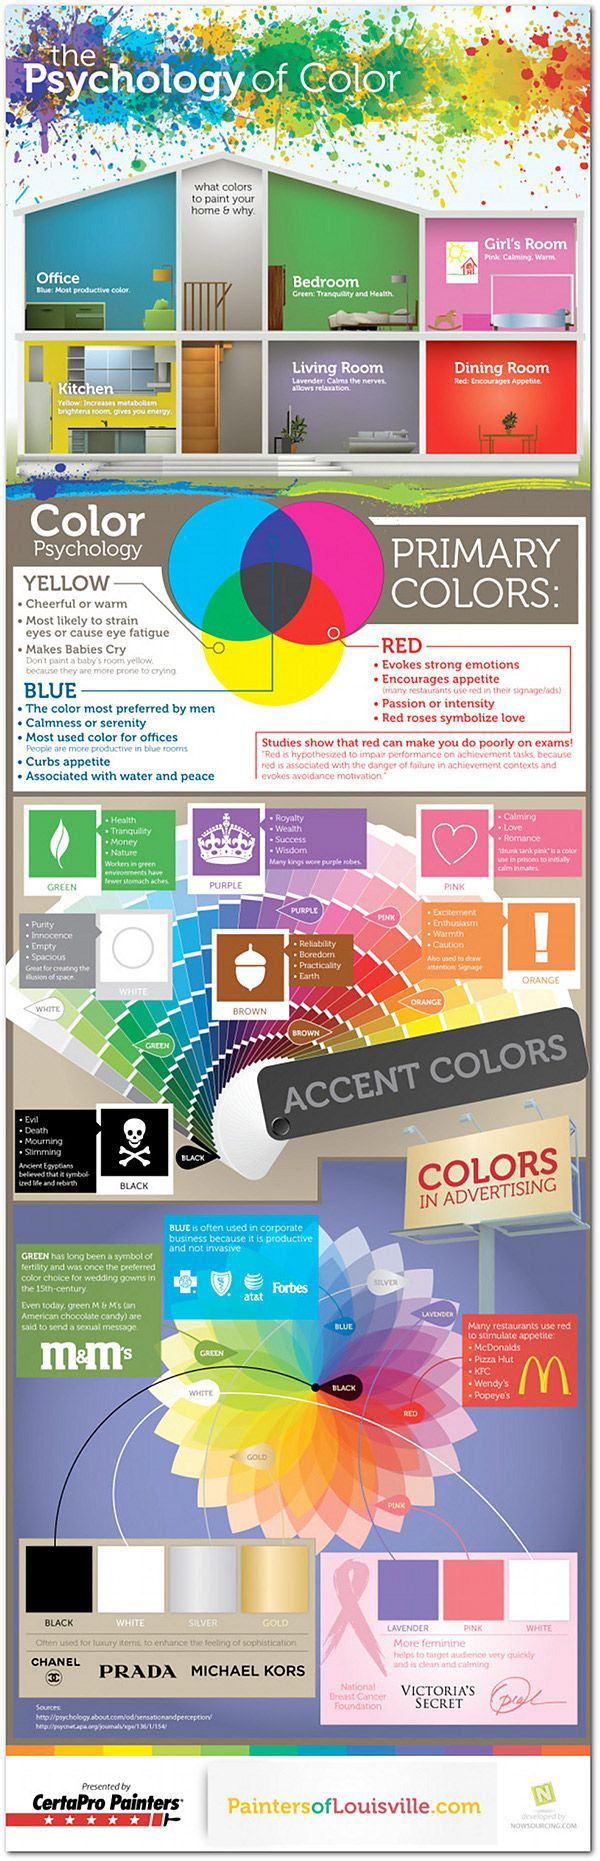 The Psychology Of Color And Branding   Advanced Interior Design TEKS 130.44  (C) (